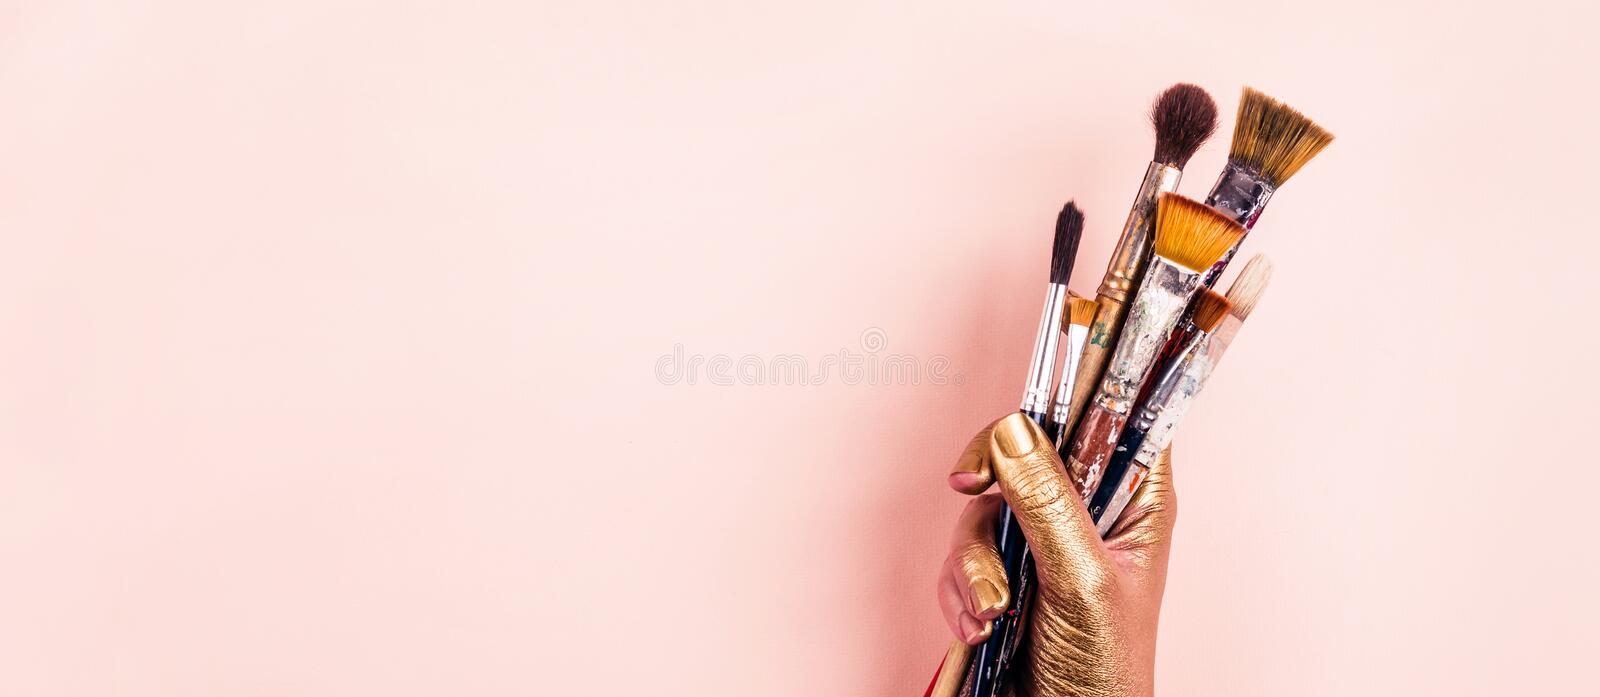 Female Artist golden hand with set of brushes. Banner format royalty free stock photos